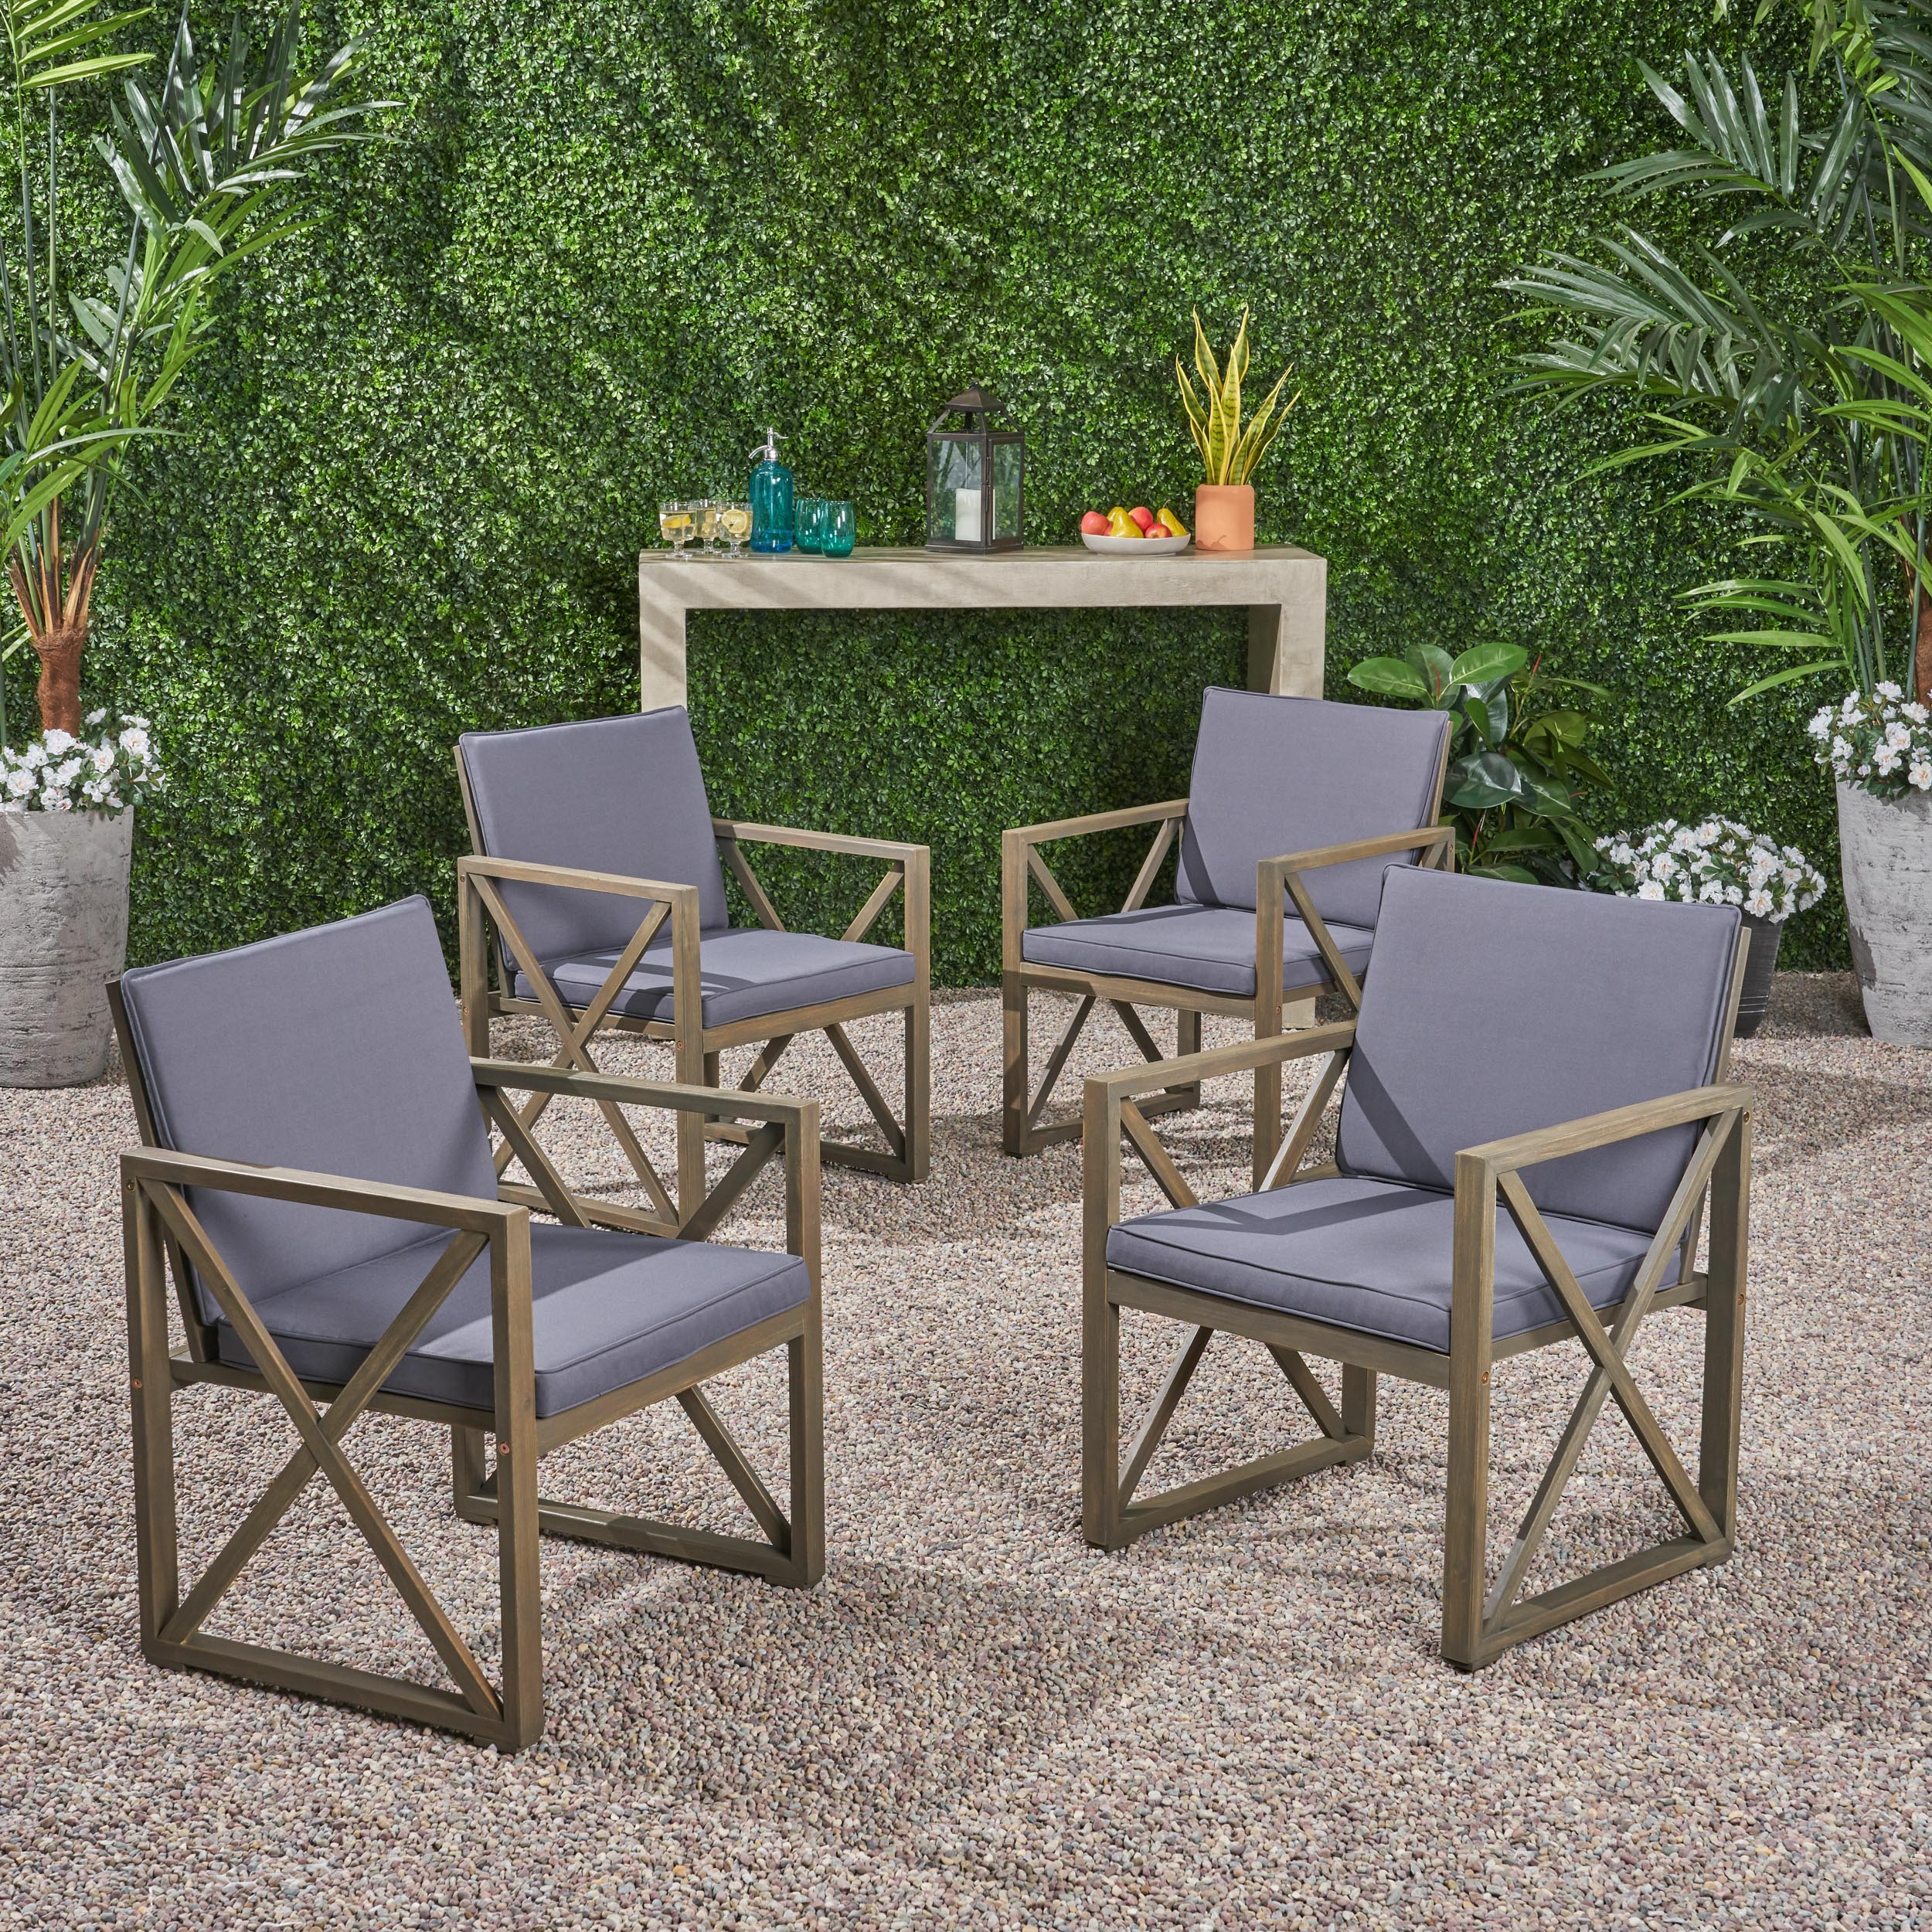 Maisie Outdoor Acacia Wood Club Chairs with Cushions, Set of 4, Gray, Dark Gray